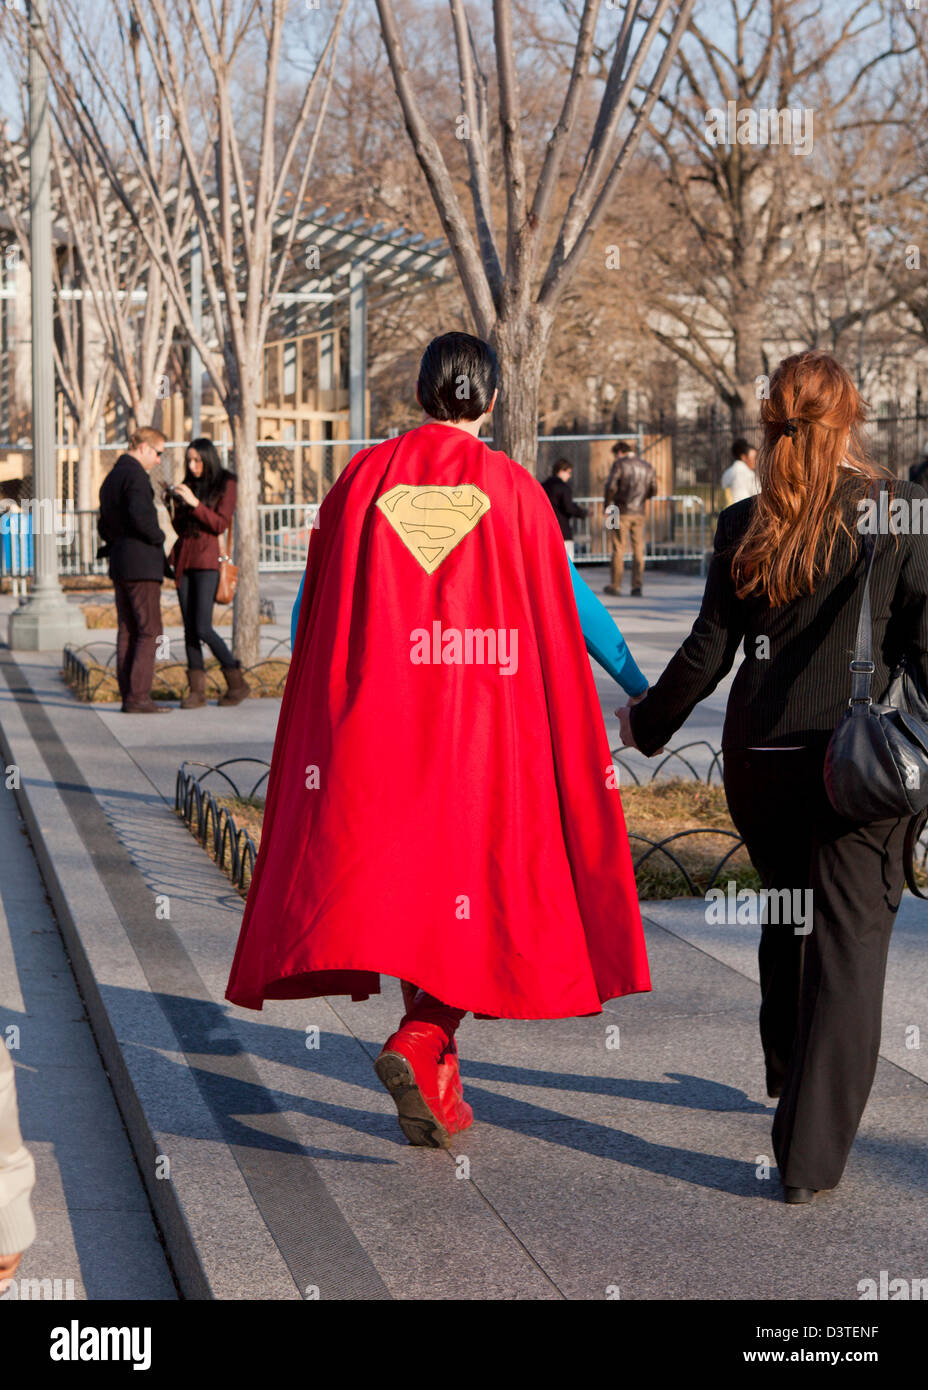 Man in Superman costume - Stock Image